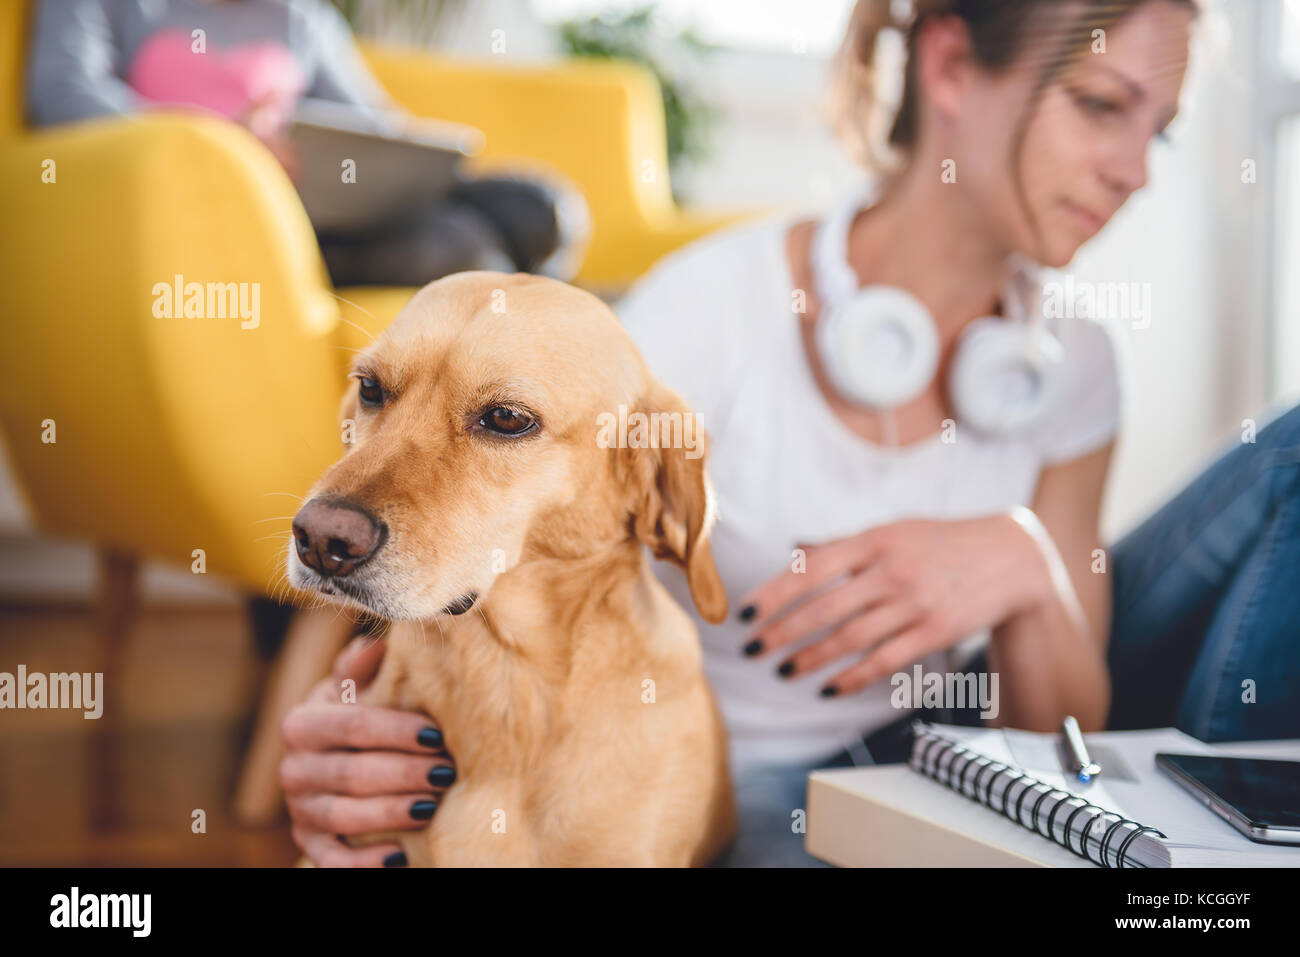 Small yellow dog sitting on the floor by the woman who is petting him at home - Stock Image